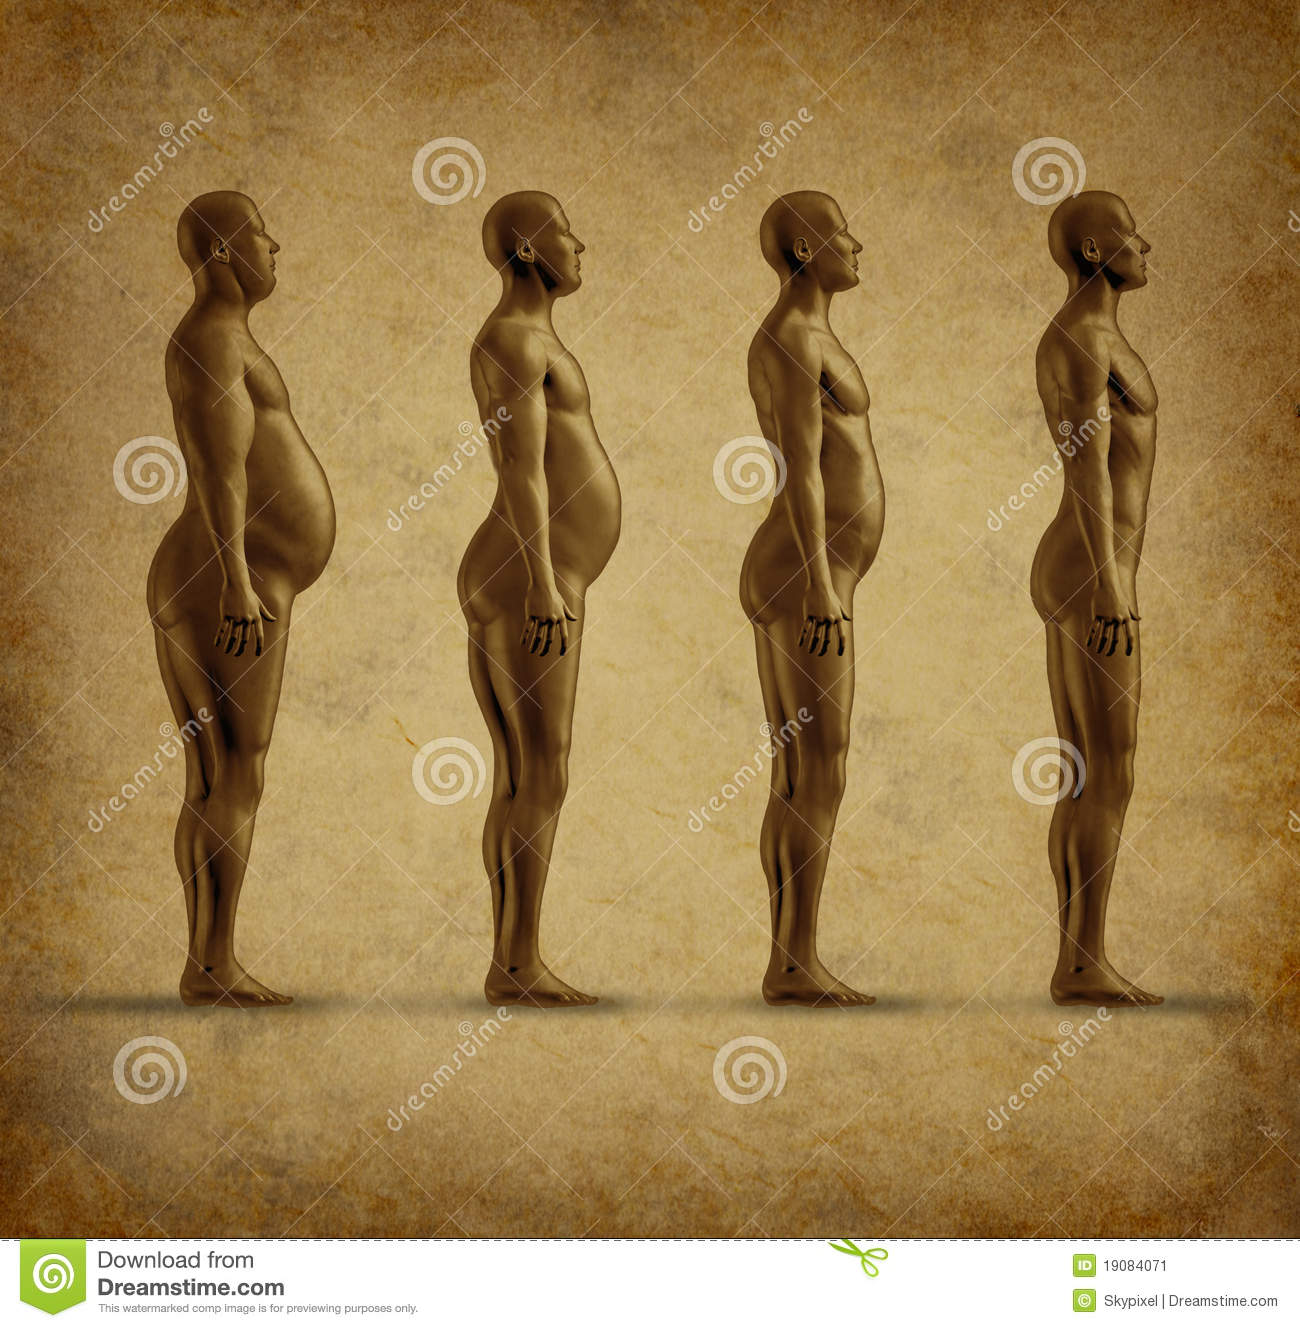 human weight loss grunge stock illustration  image of